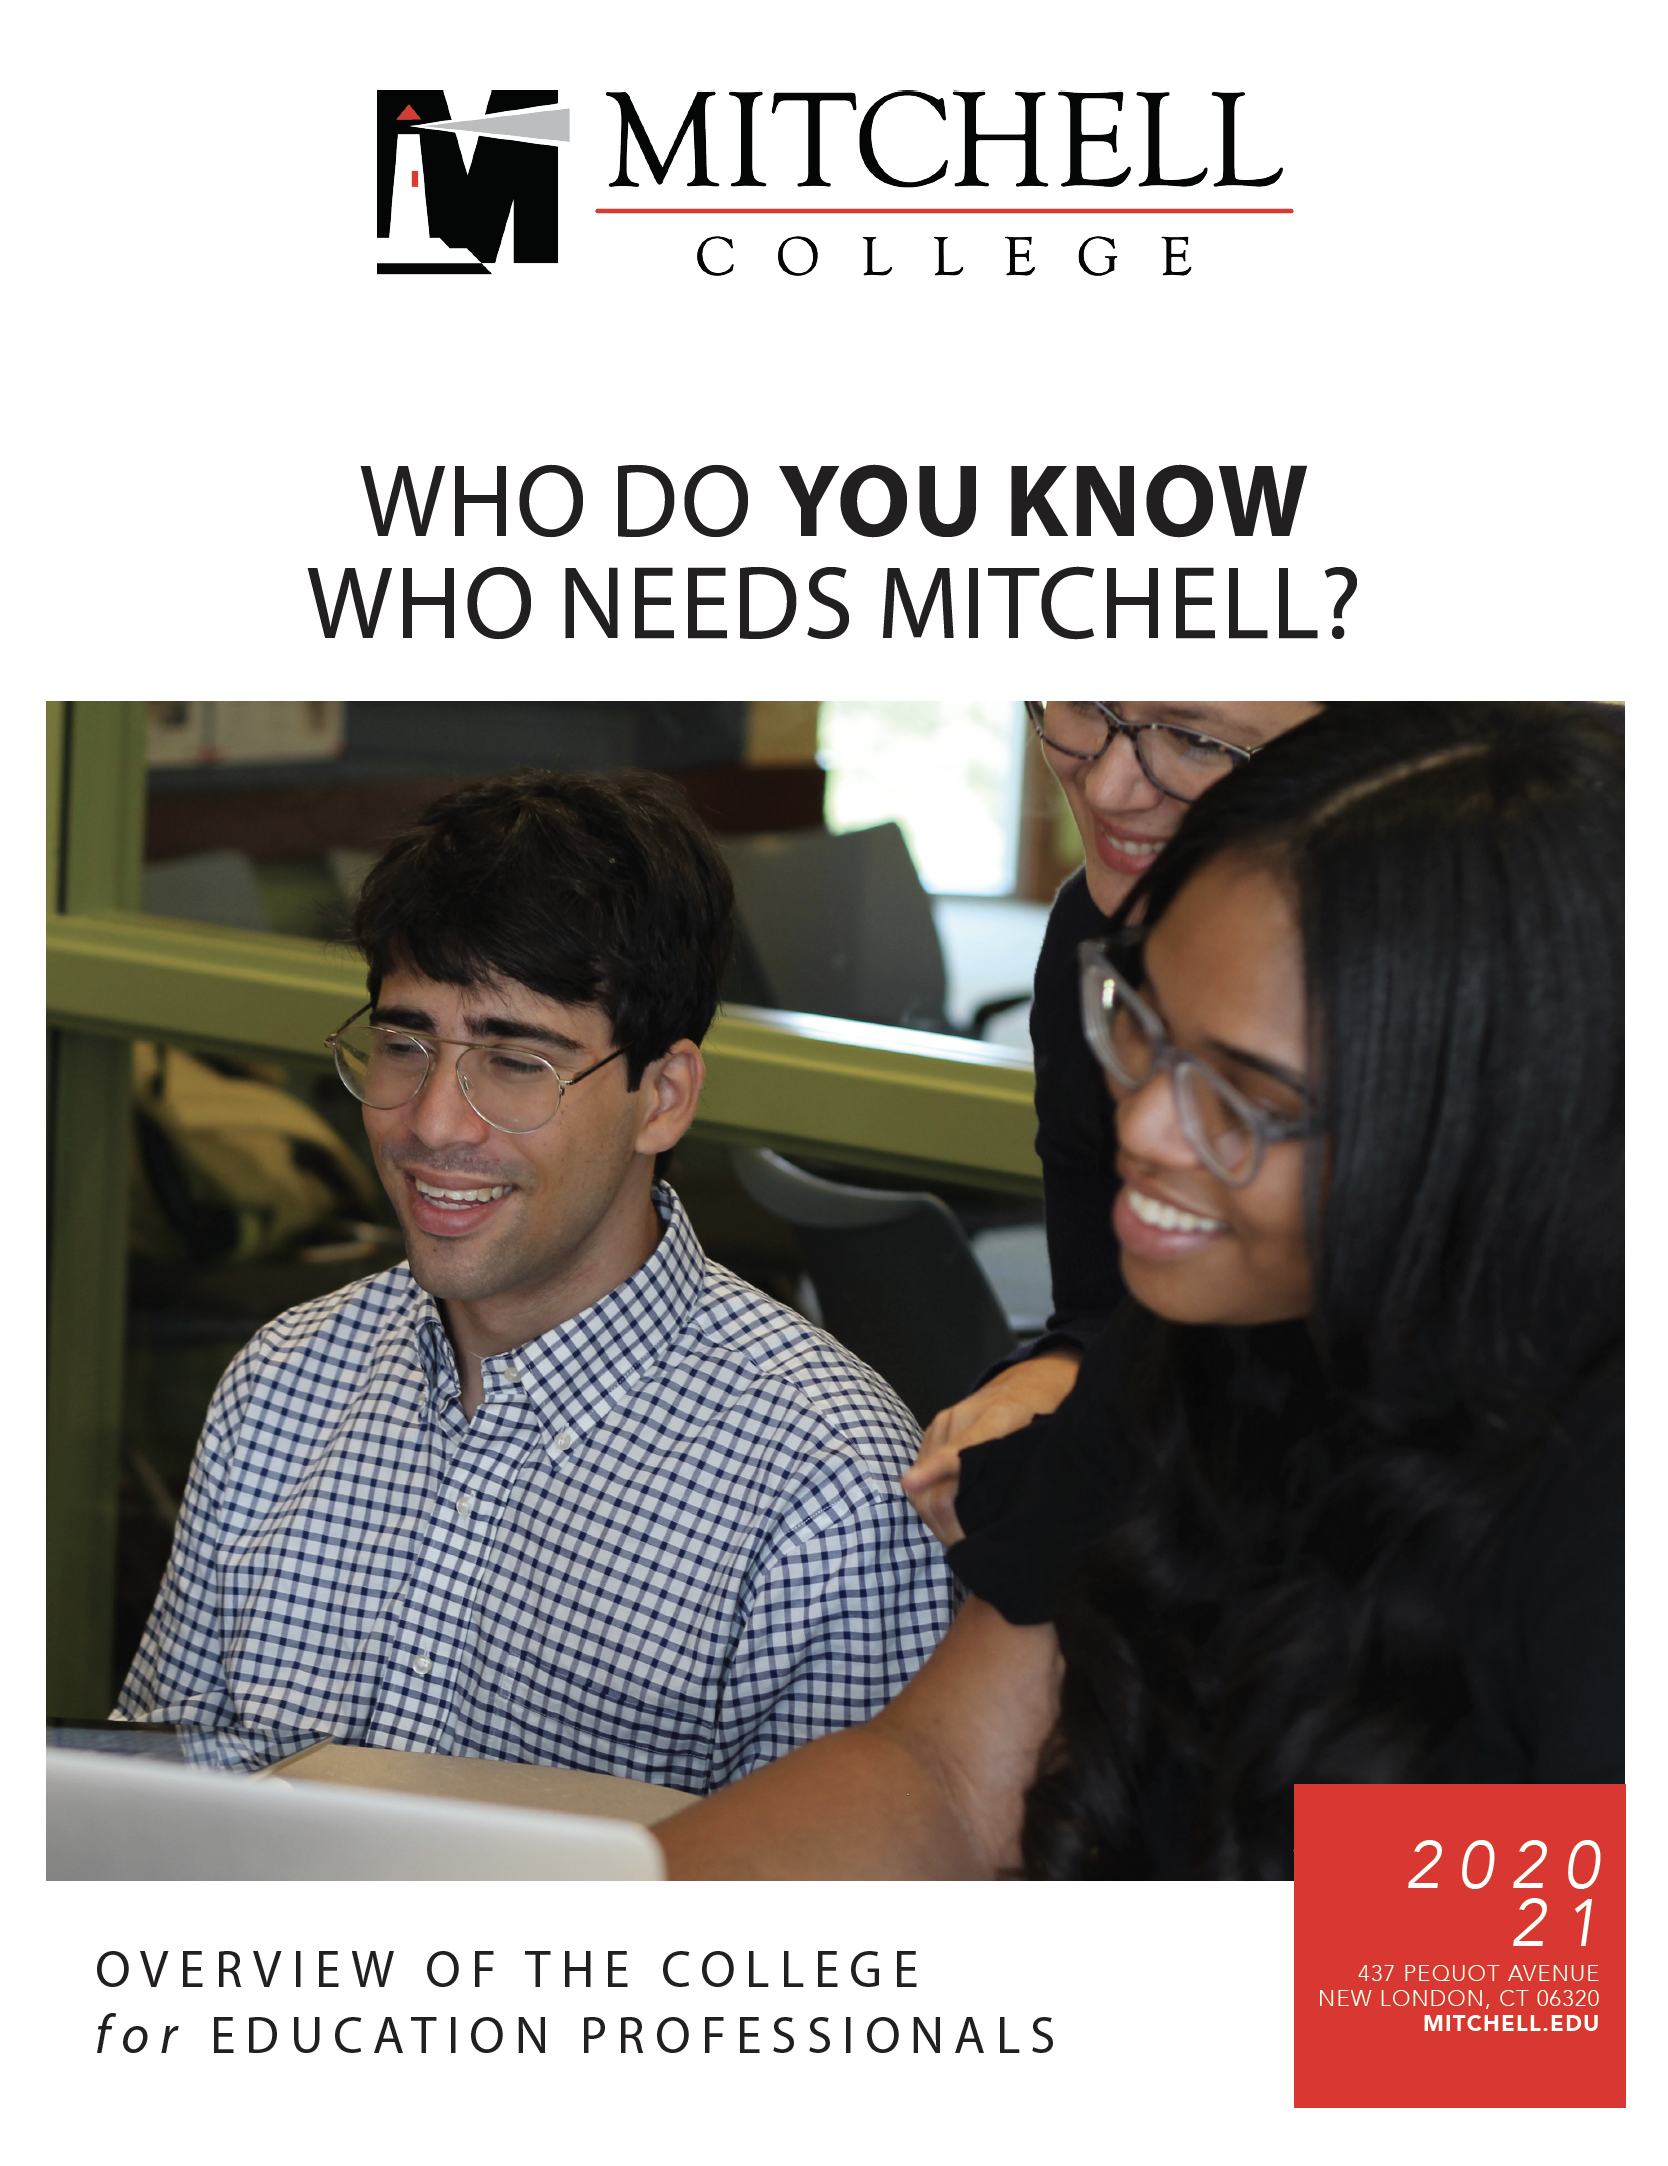 Counselors, Mitchell College